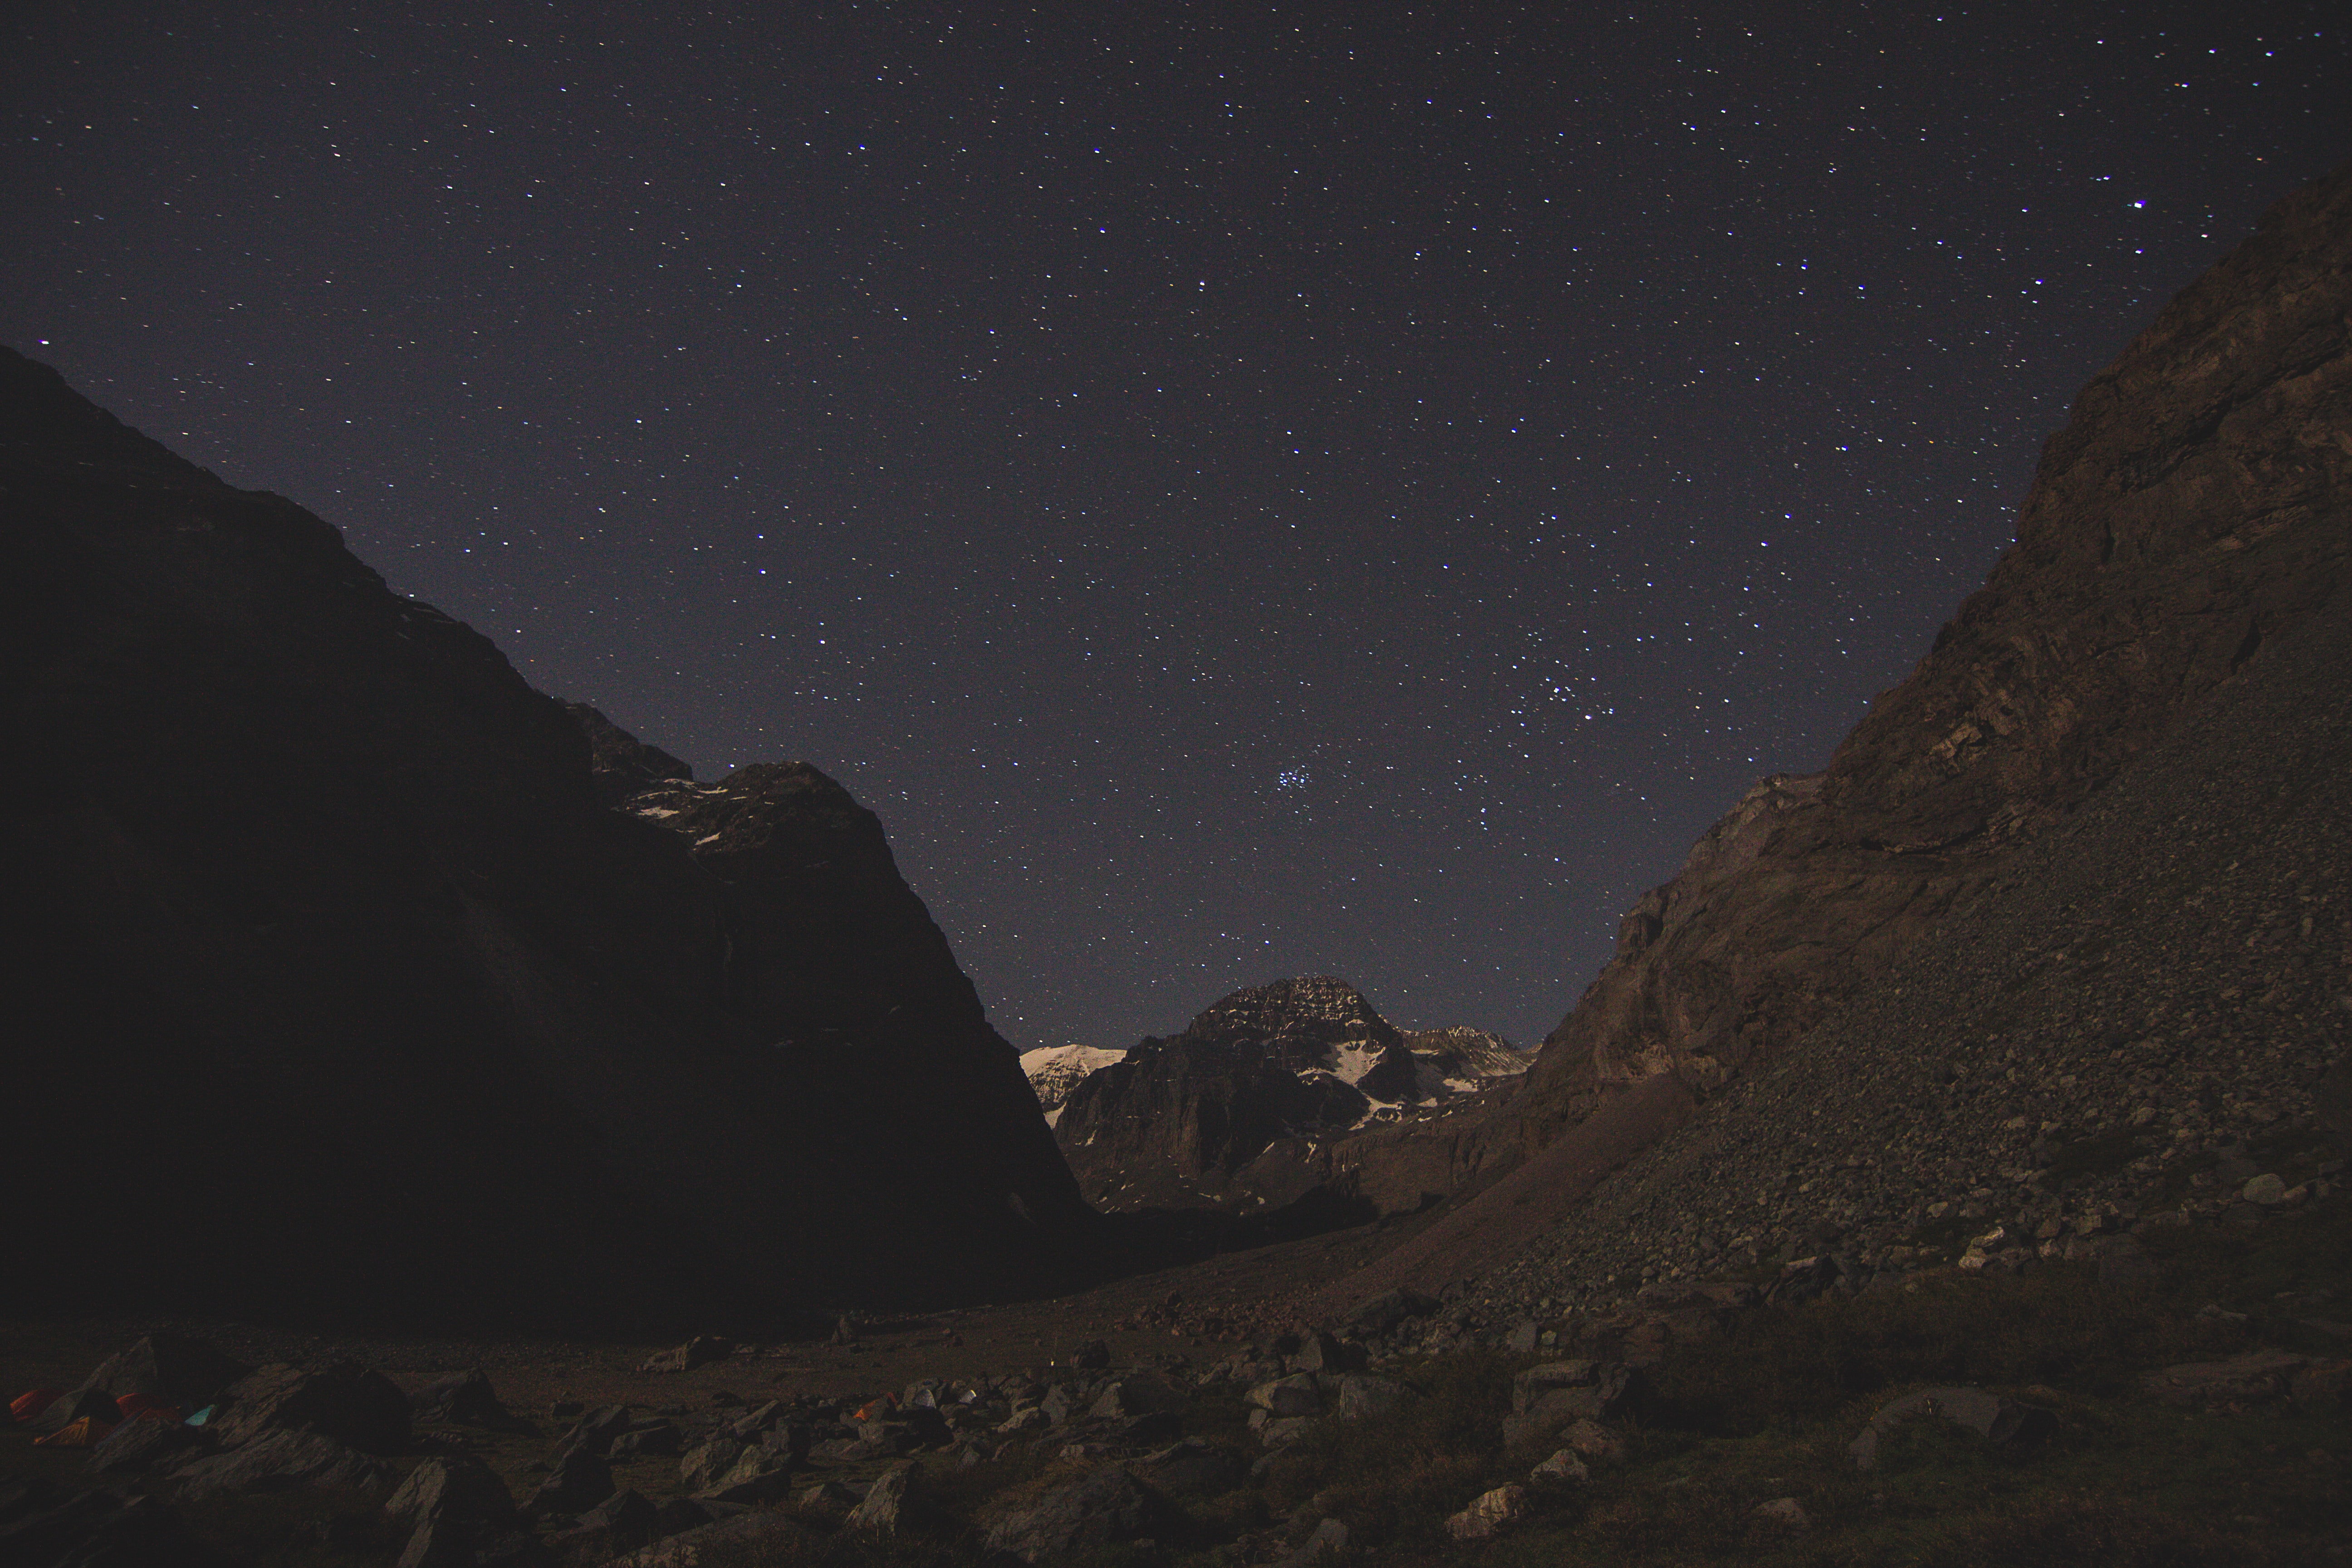 scenery of stars and mountains